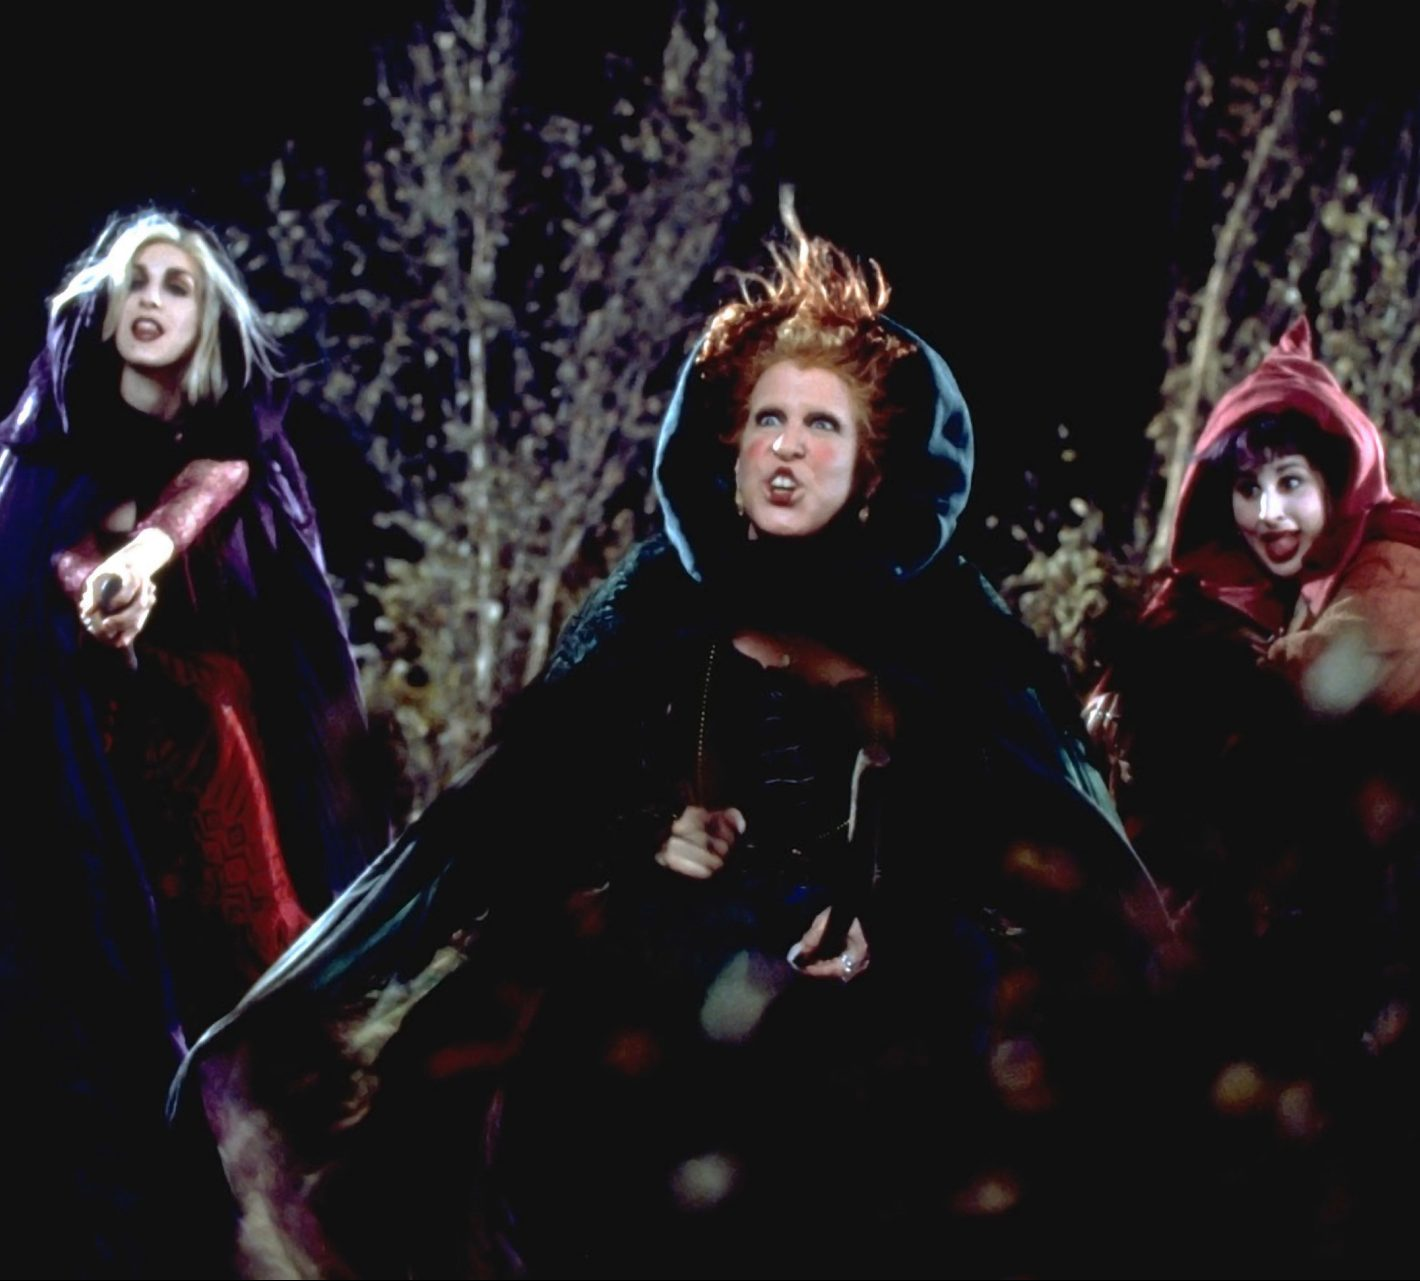 5 30 e1603719025530 These 20 Hocus Pocus Facts Will Cast A Spell On You